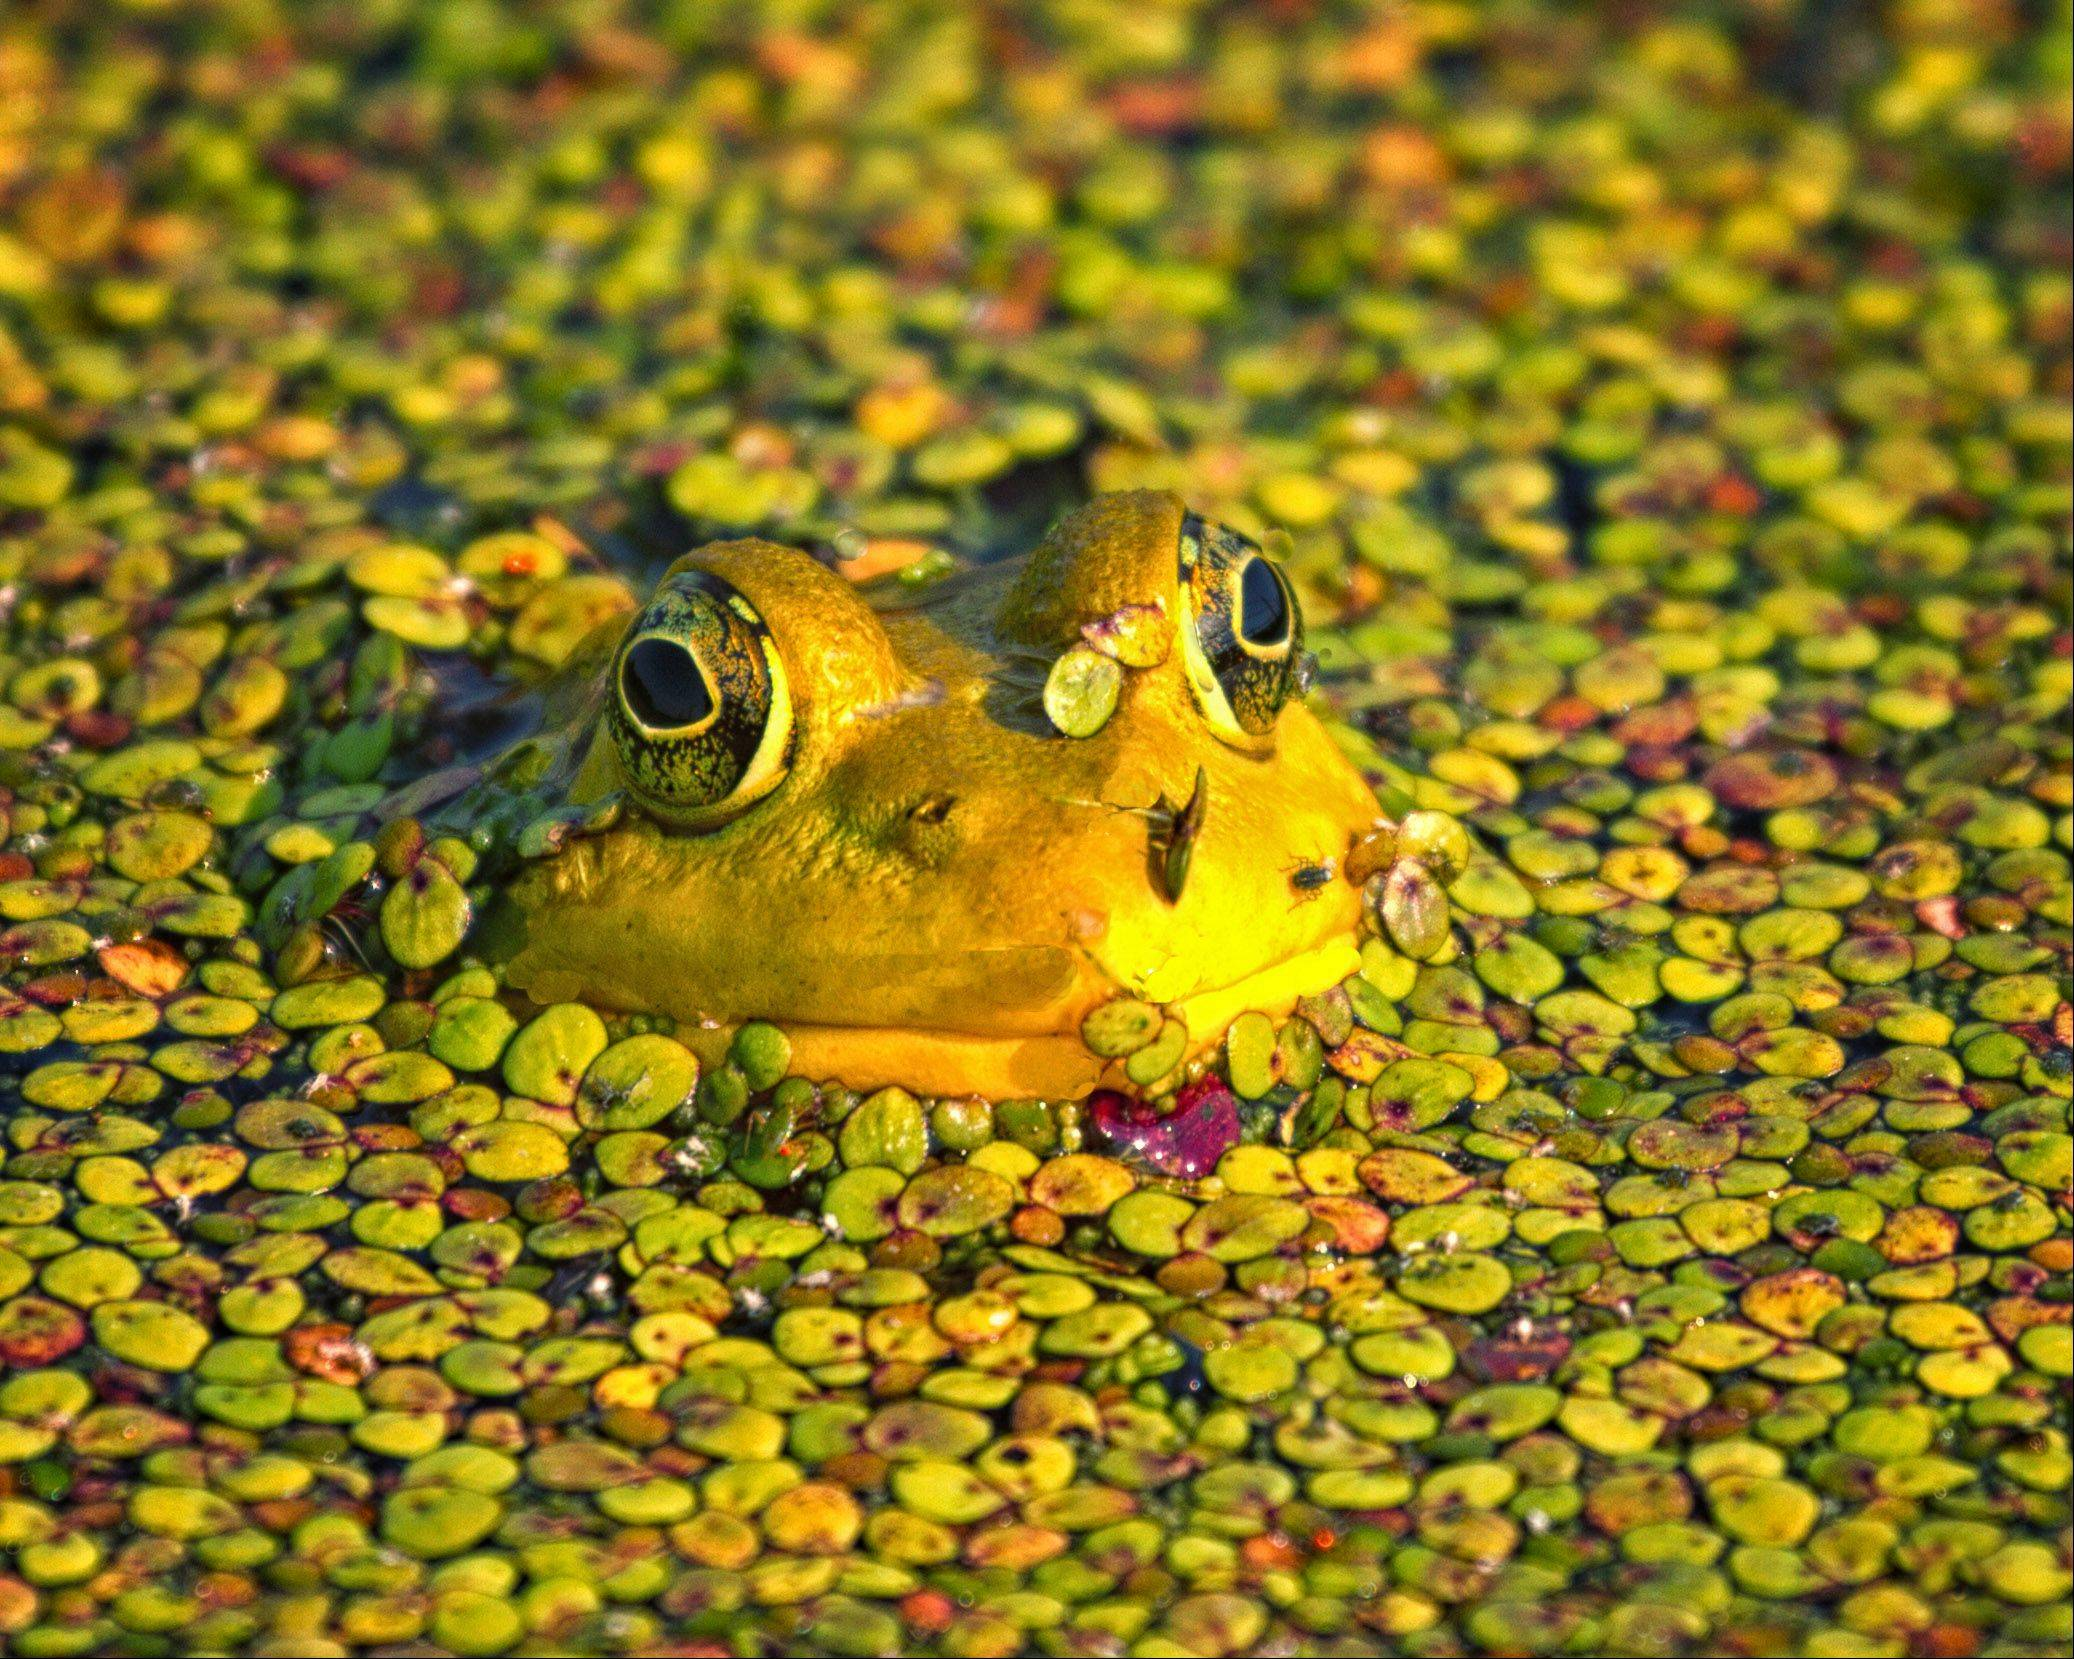 A yellow frog peeks out from duckweed at the Horicon Marsh area of Wisconsin last July.